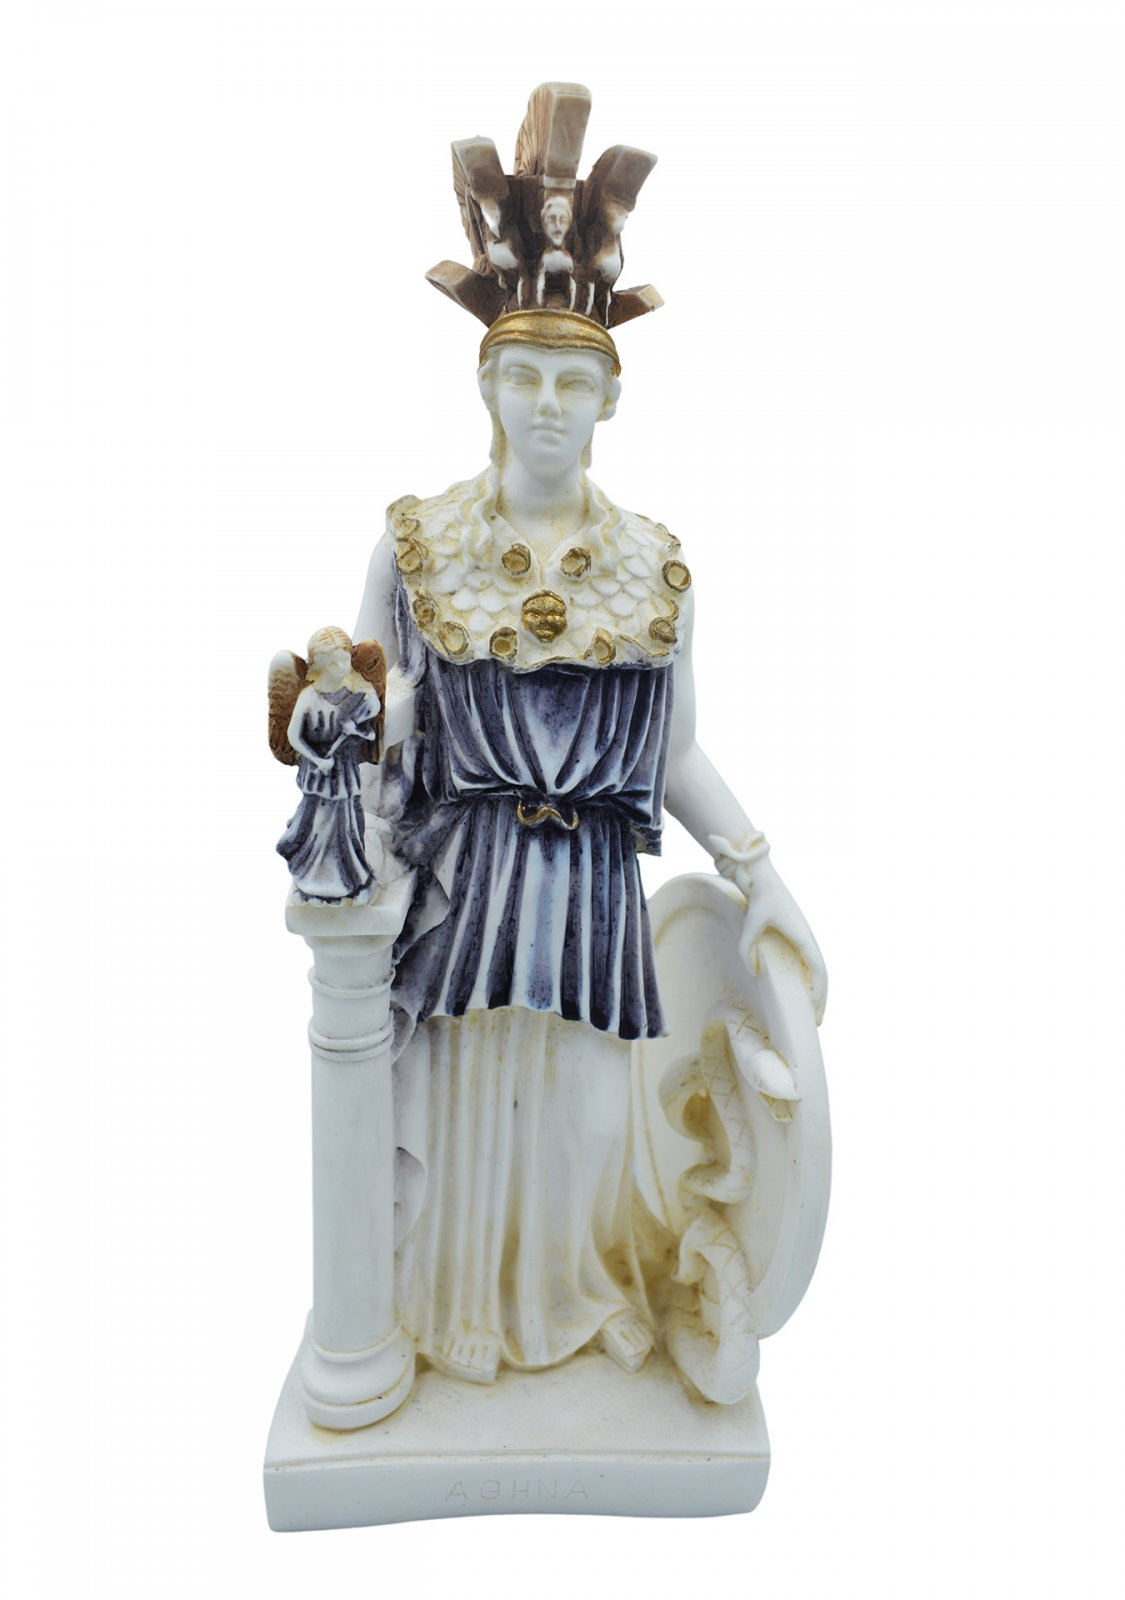 Athena Pallas, Greek goddess of wisdom, alabaster statue with color and patina